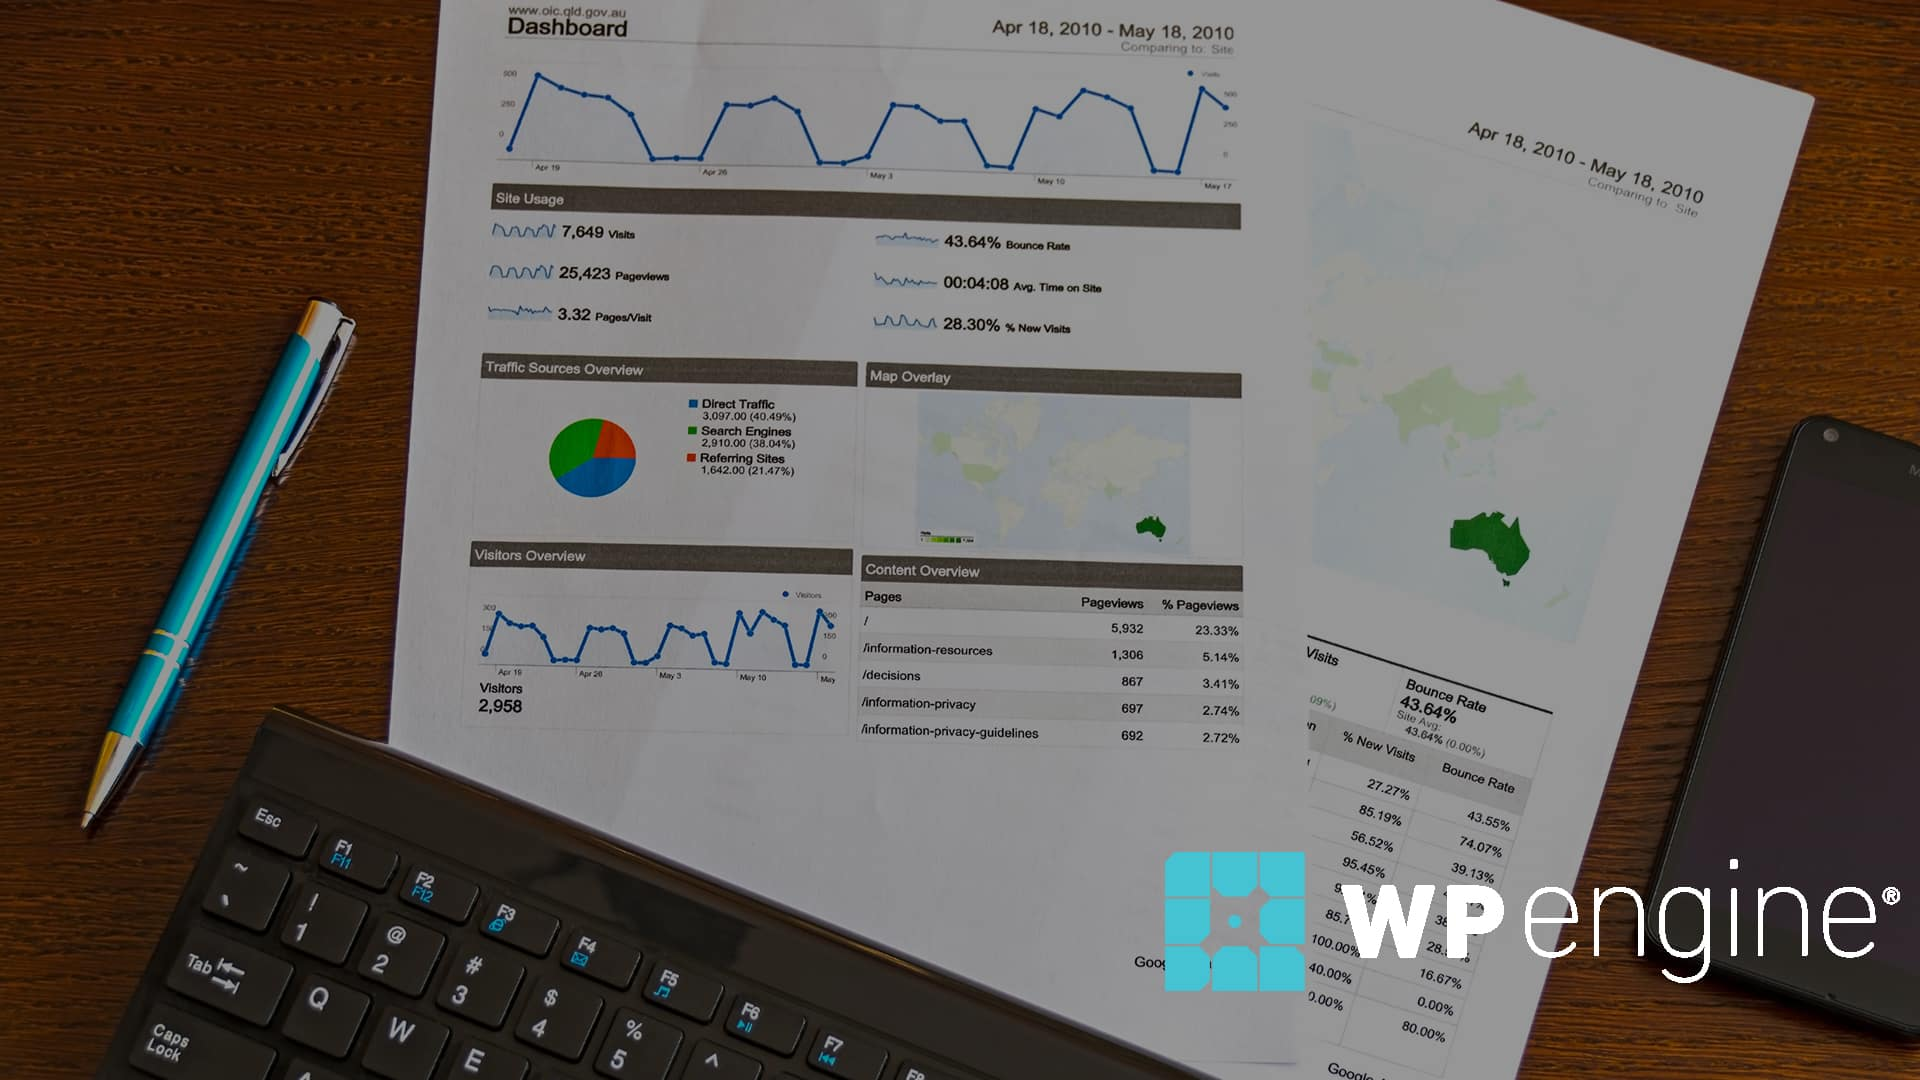 WPEngine Leaves a LOT of Money on the Table for a Full-Service Web & Marketing Agency